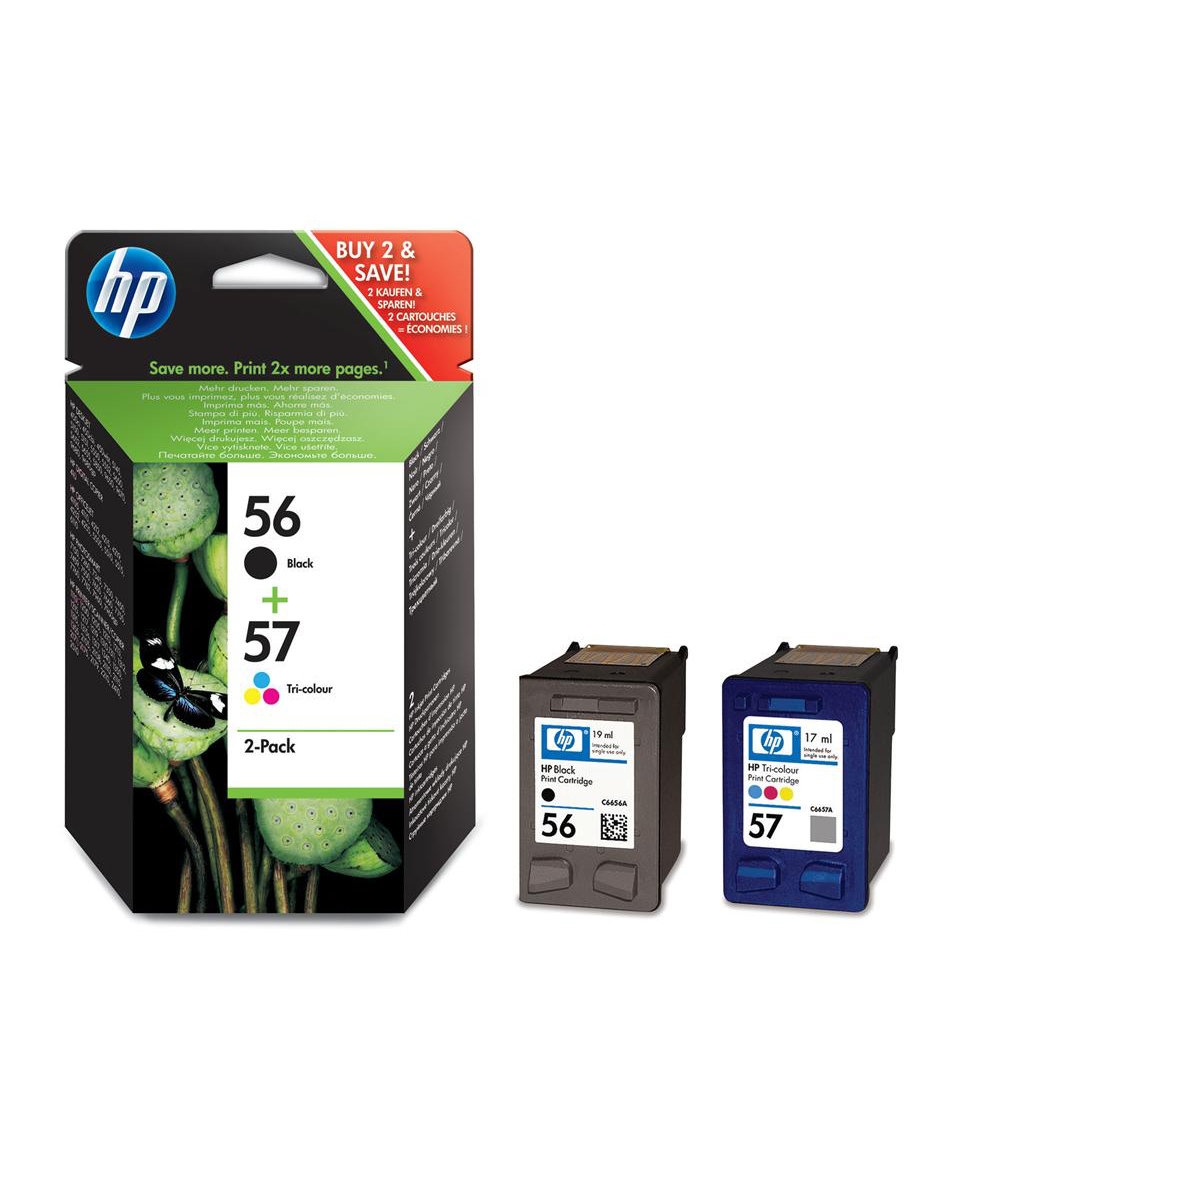 HewlettPackard HP No.56 &57 InkjetCartPageLife Black520pp/Tri-Colour500pp 19ml/17mlRef SA342AEPack 2